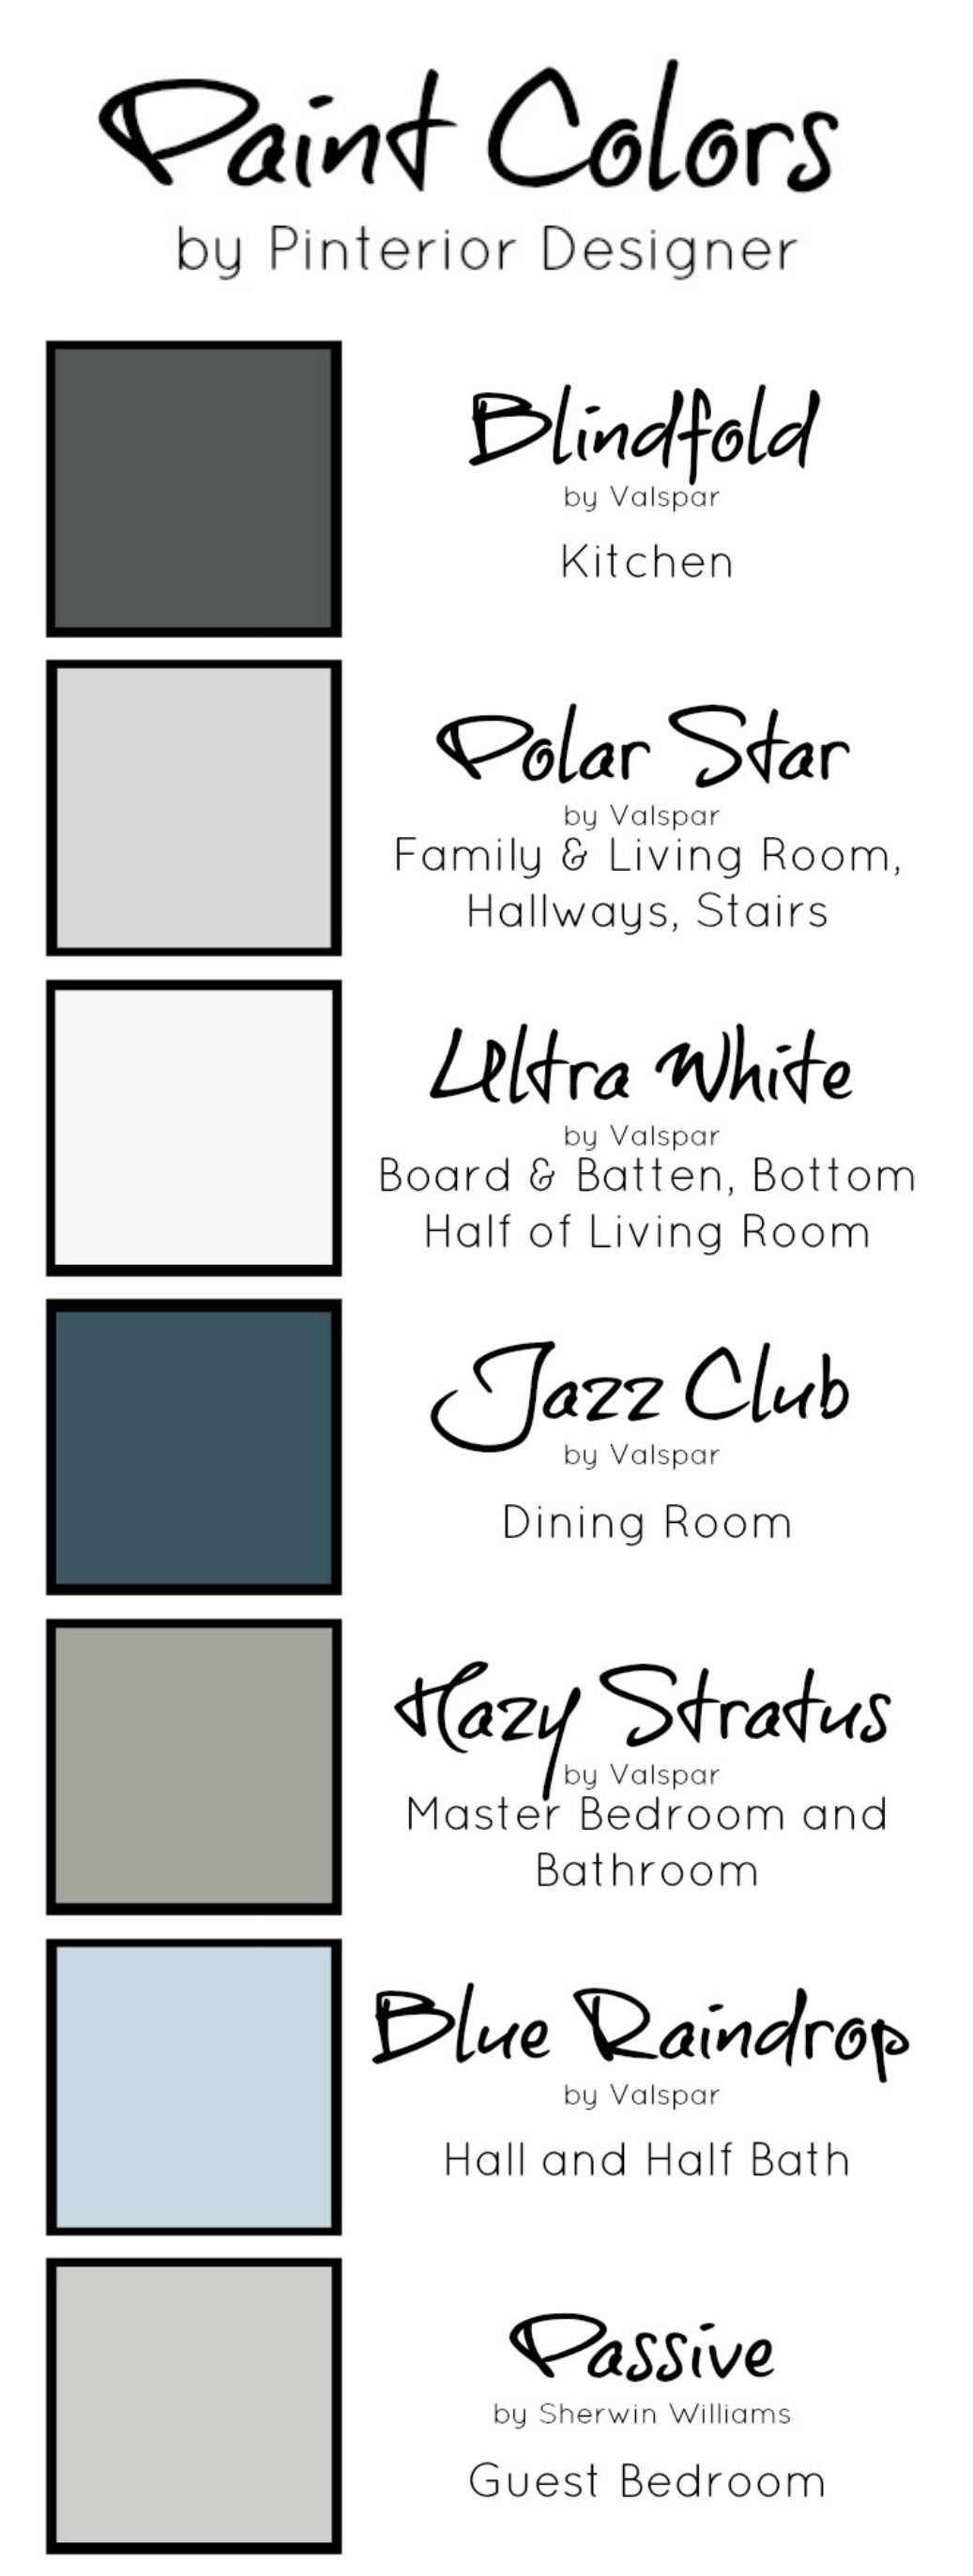 Love these colors Perfect mix of neutral grays and blues for a